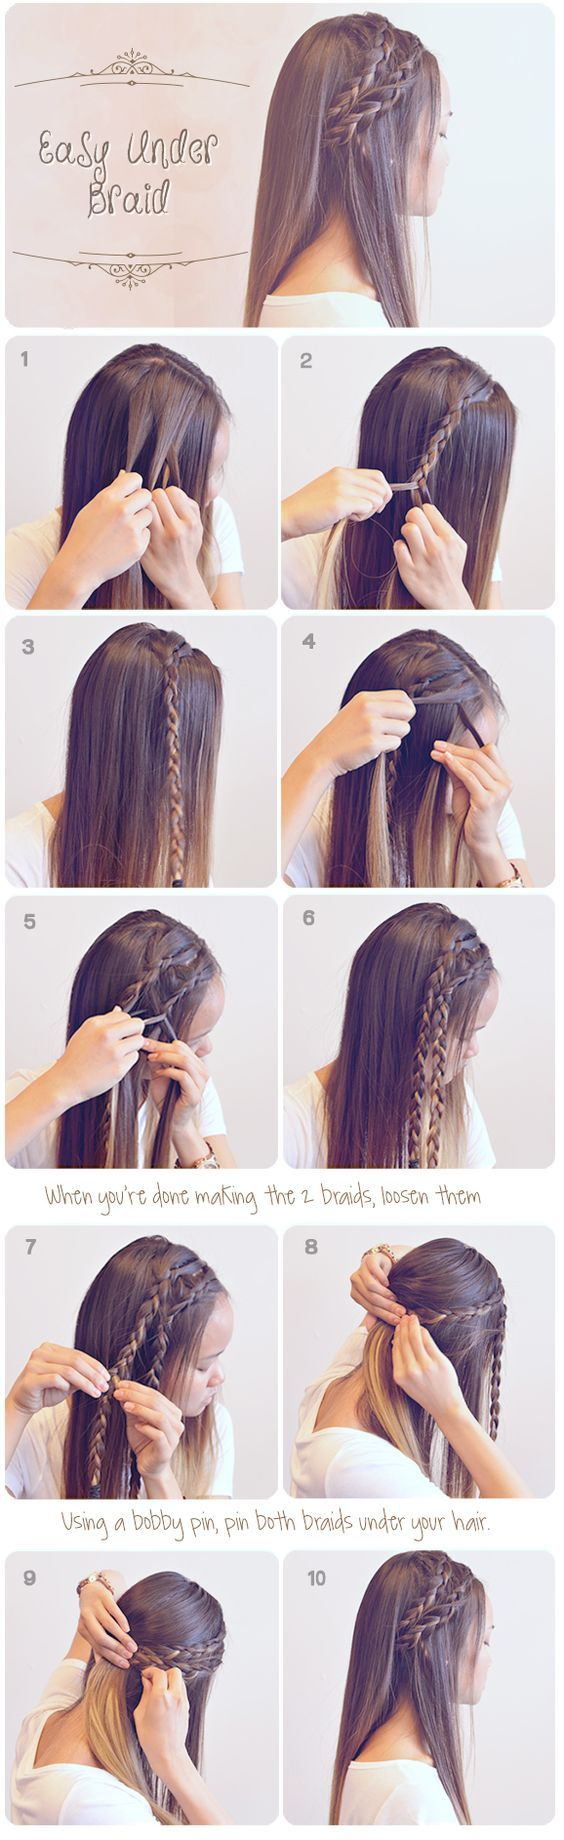 Quick Hairstyles For Braids 25 Best Ideas About Cute Braided Hairstyles On Pinterest Cute